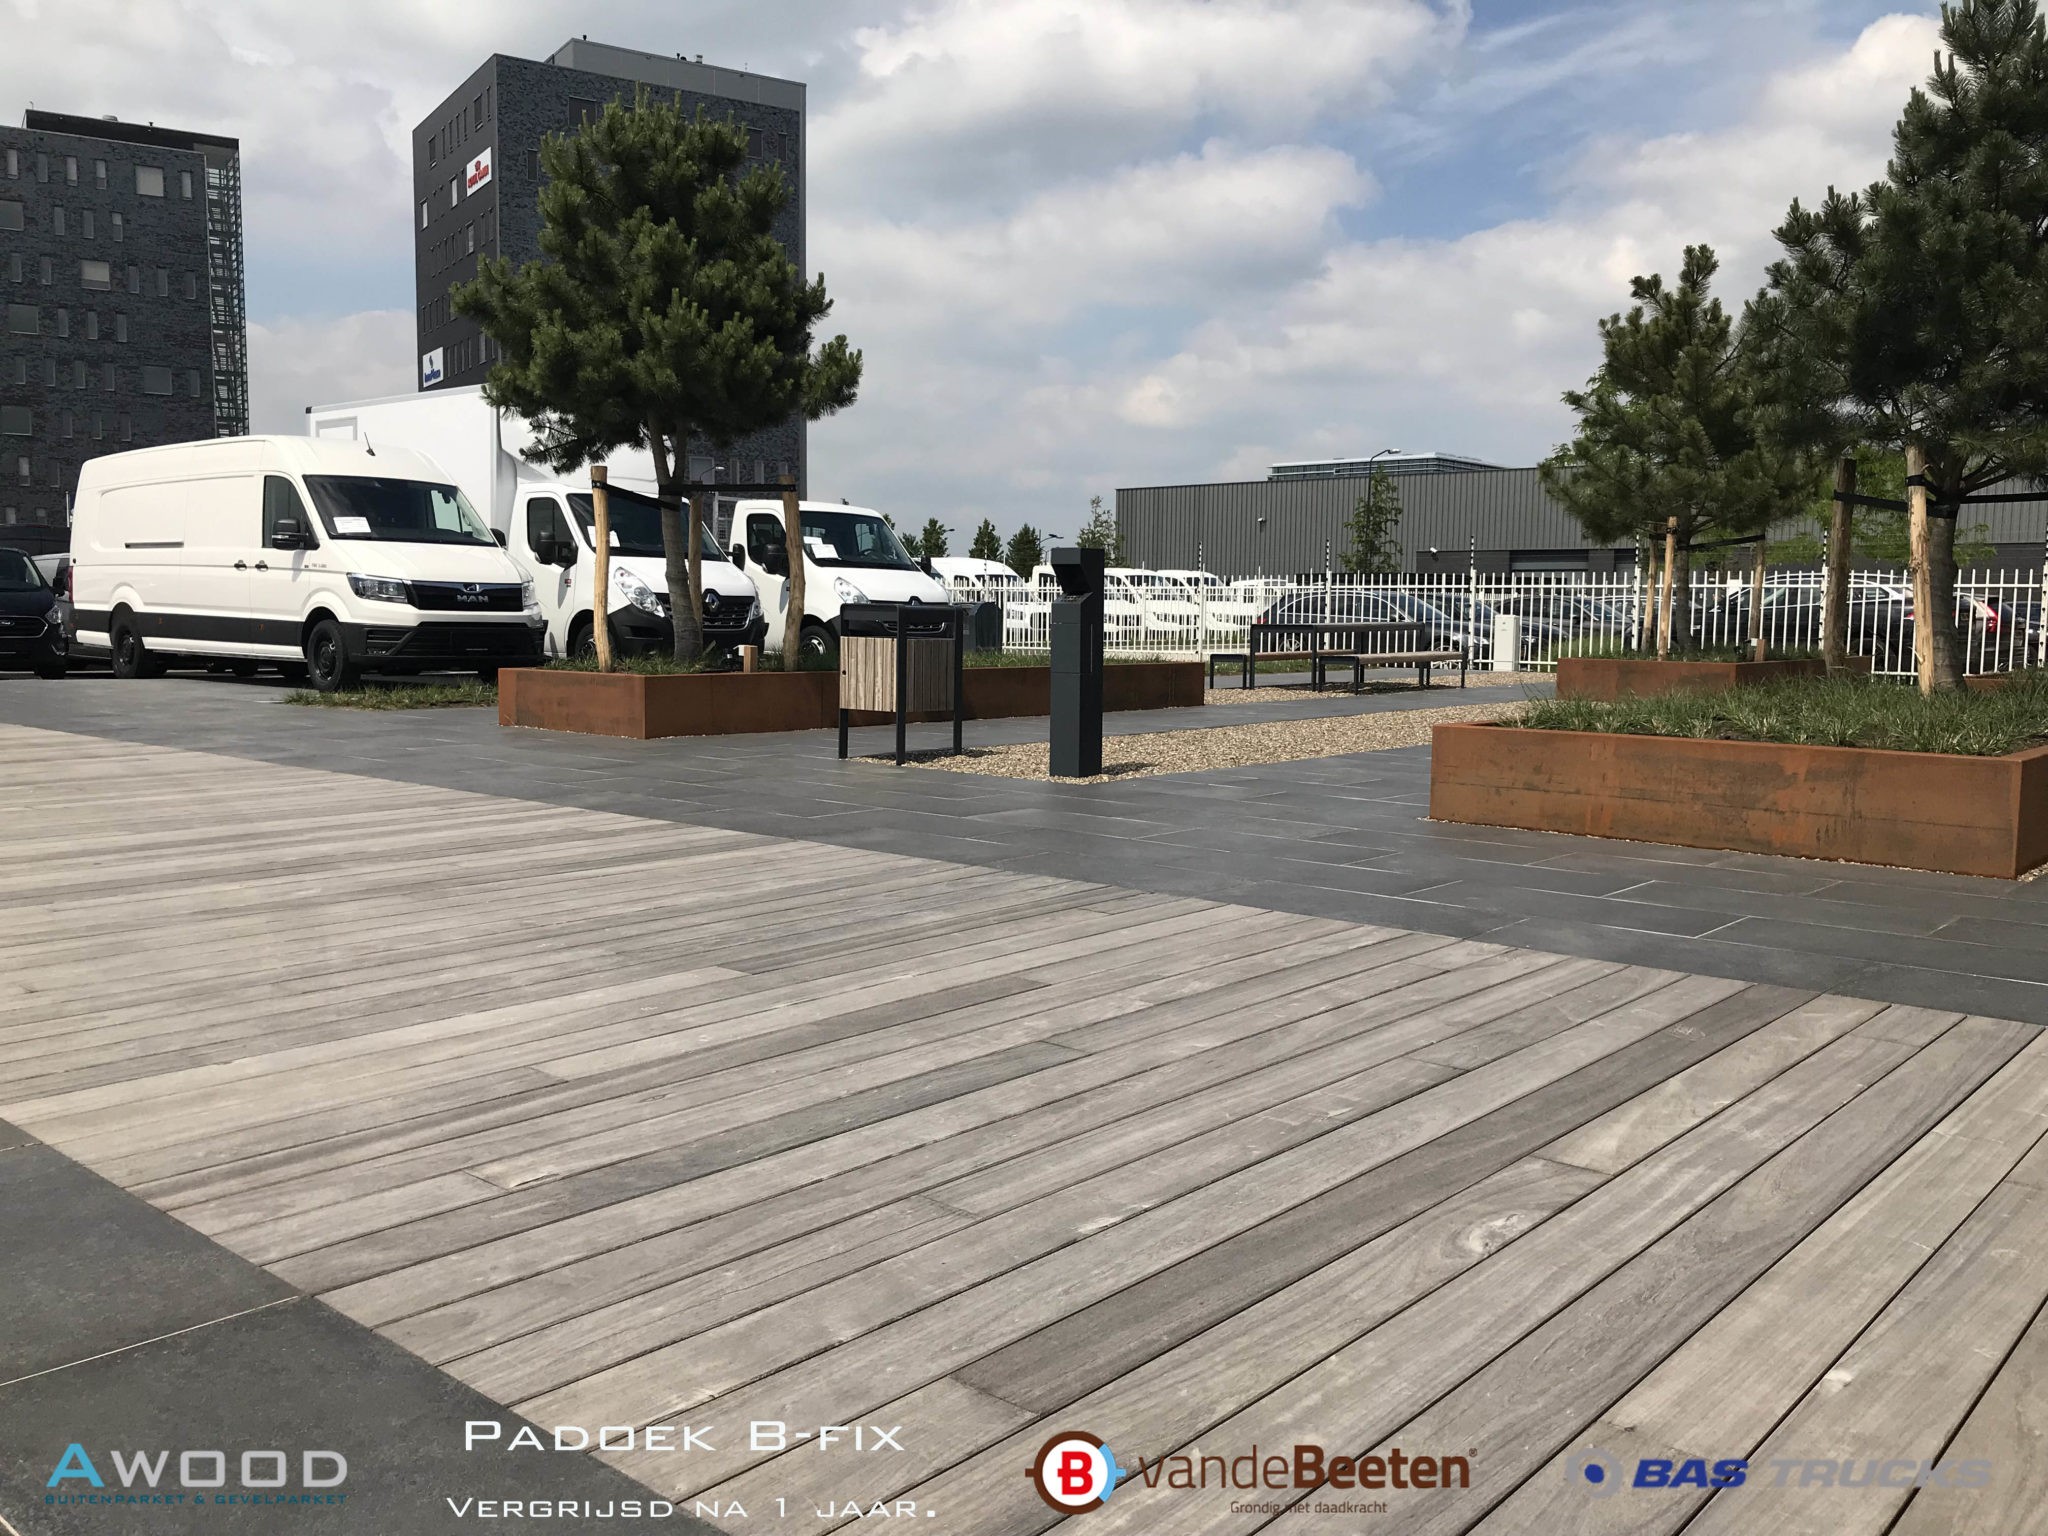 Padoek B-fix Bas Trucks Van de Beeten Awood 11